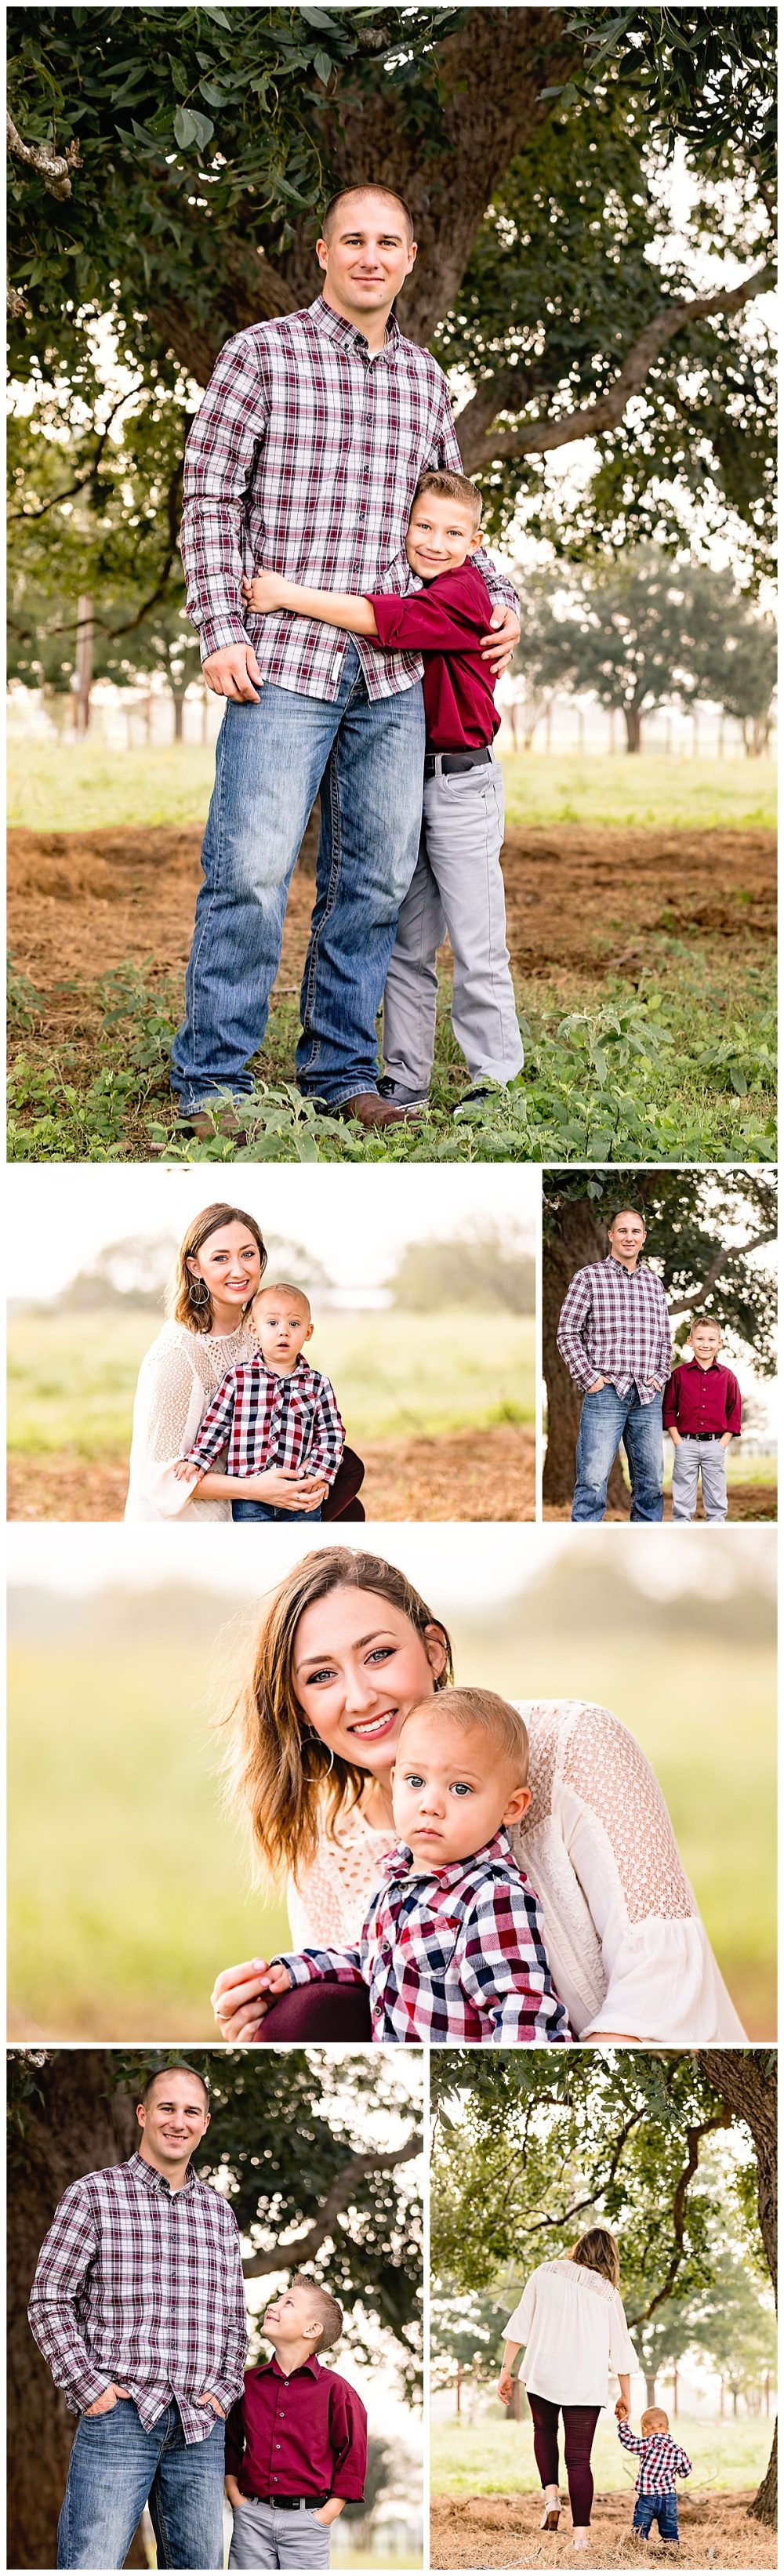 Family-Photographer-LaVernia-Texas-Fall-Carly-Barton-Photography_0007.jpg